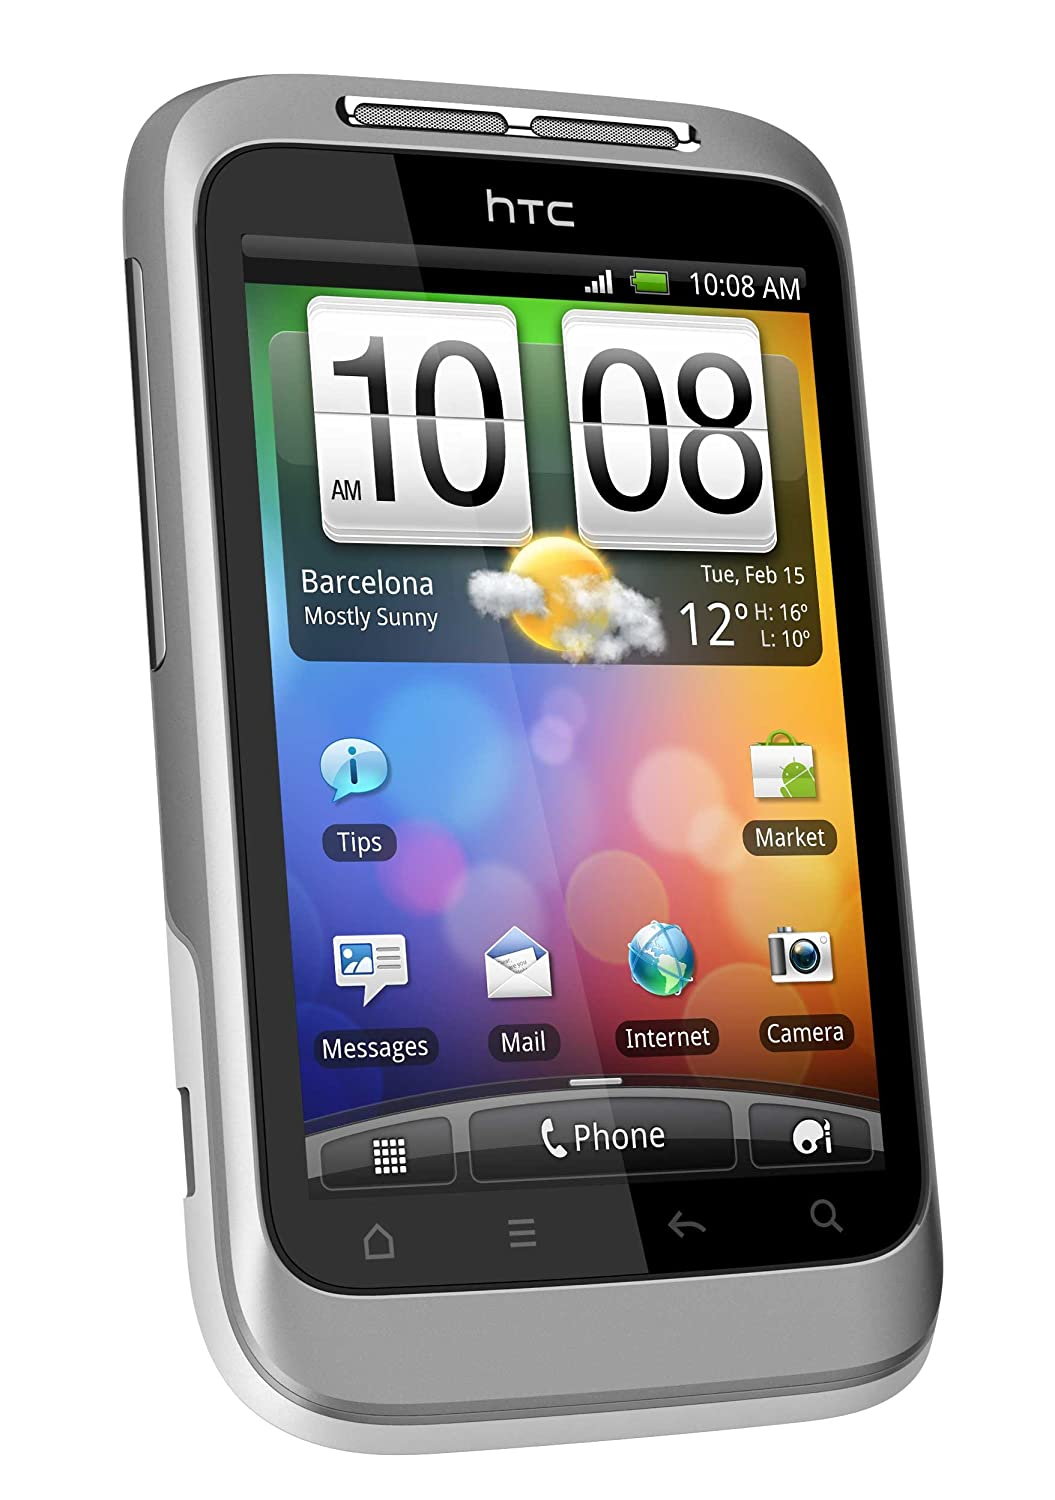 Amazon.com: HTC Wildfire S Quad-band Smartphone - Unlocked: Cell Phones &  Accessories